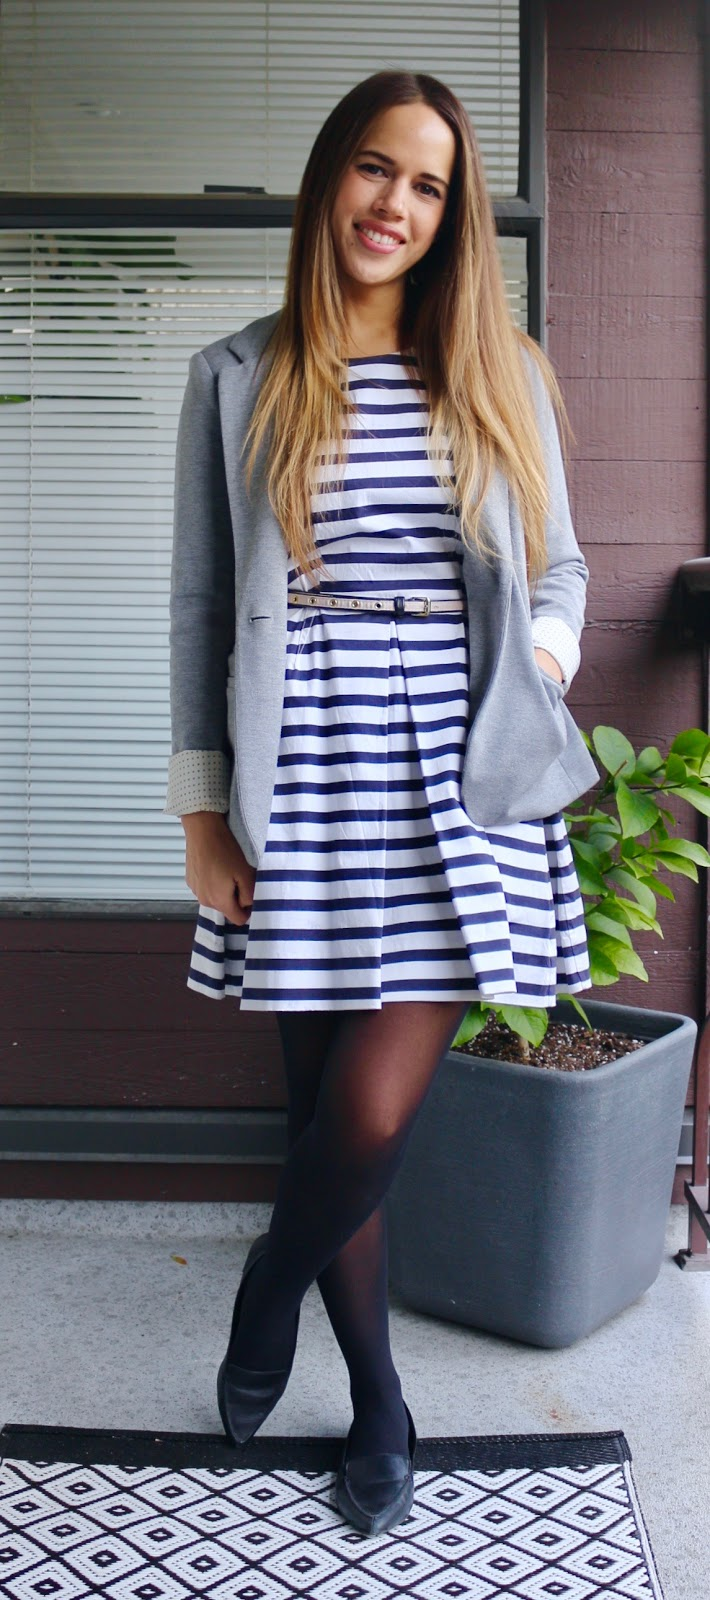 Jules in Flats - Striped Dress with Blazer